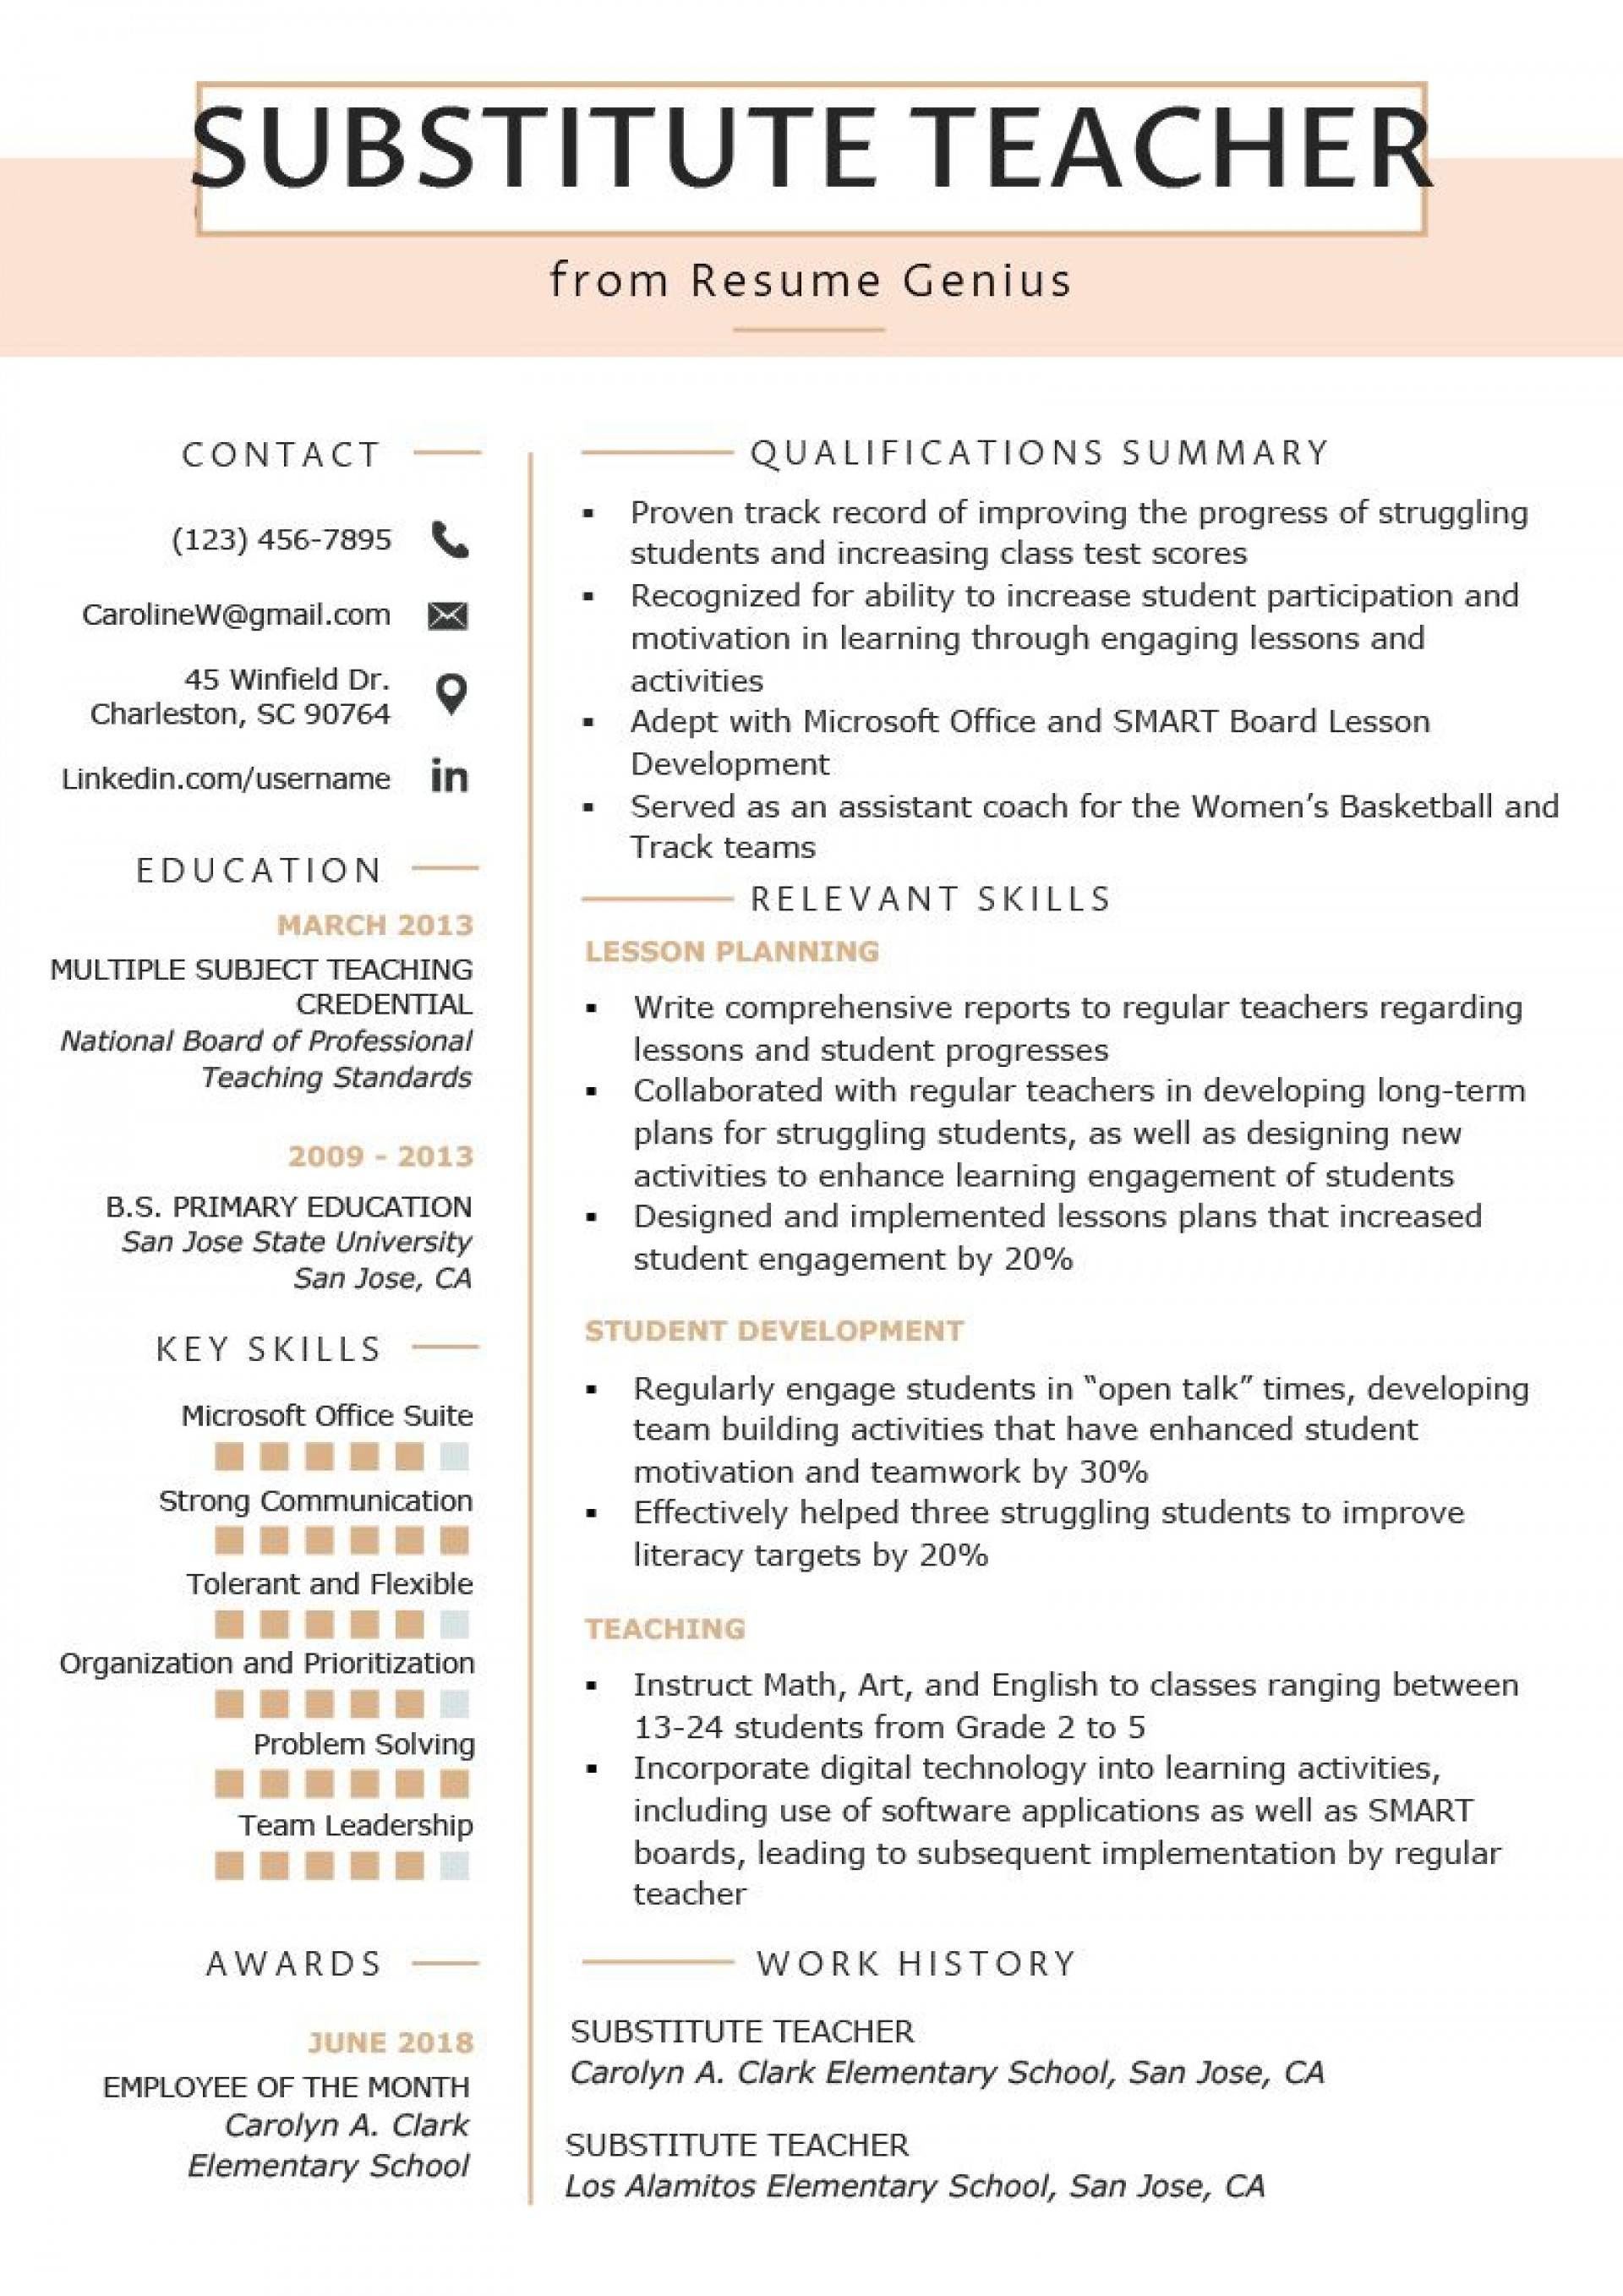 002 Stunning Resume Template For Teaching High Def  Example Assistant Cv Uk Job1920